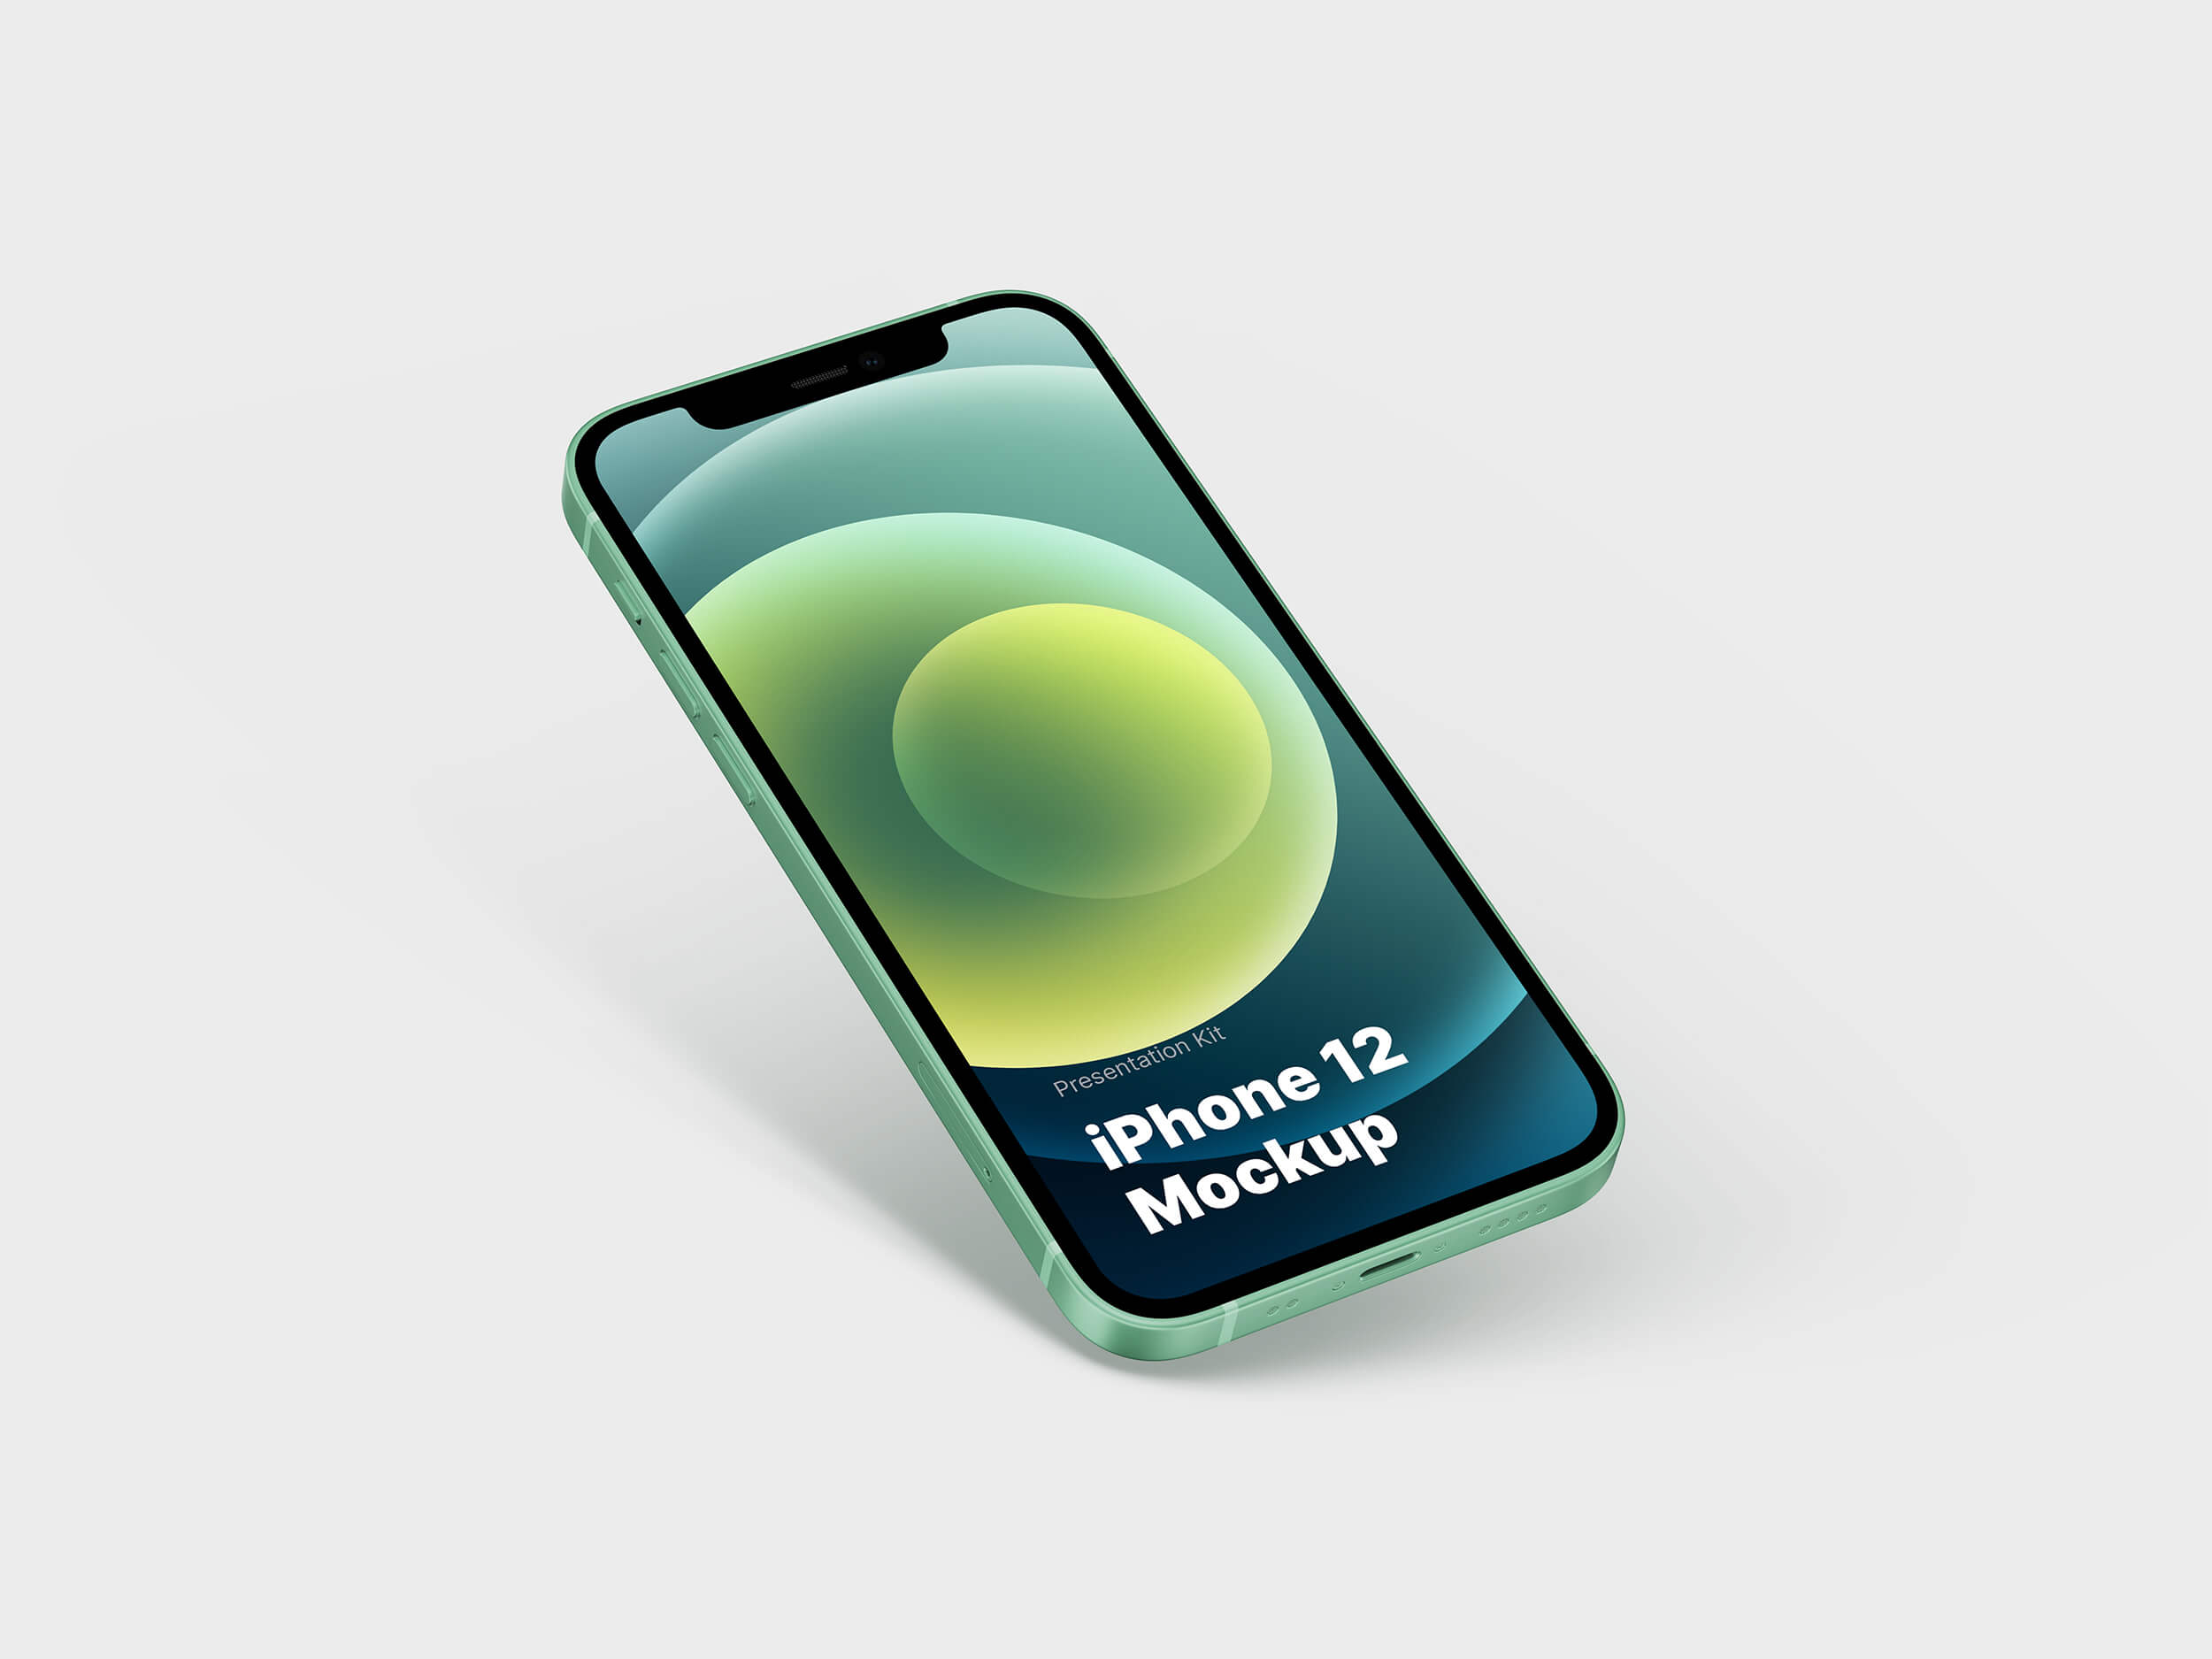 Green iPhone 12 Mockup